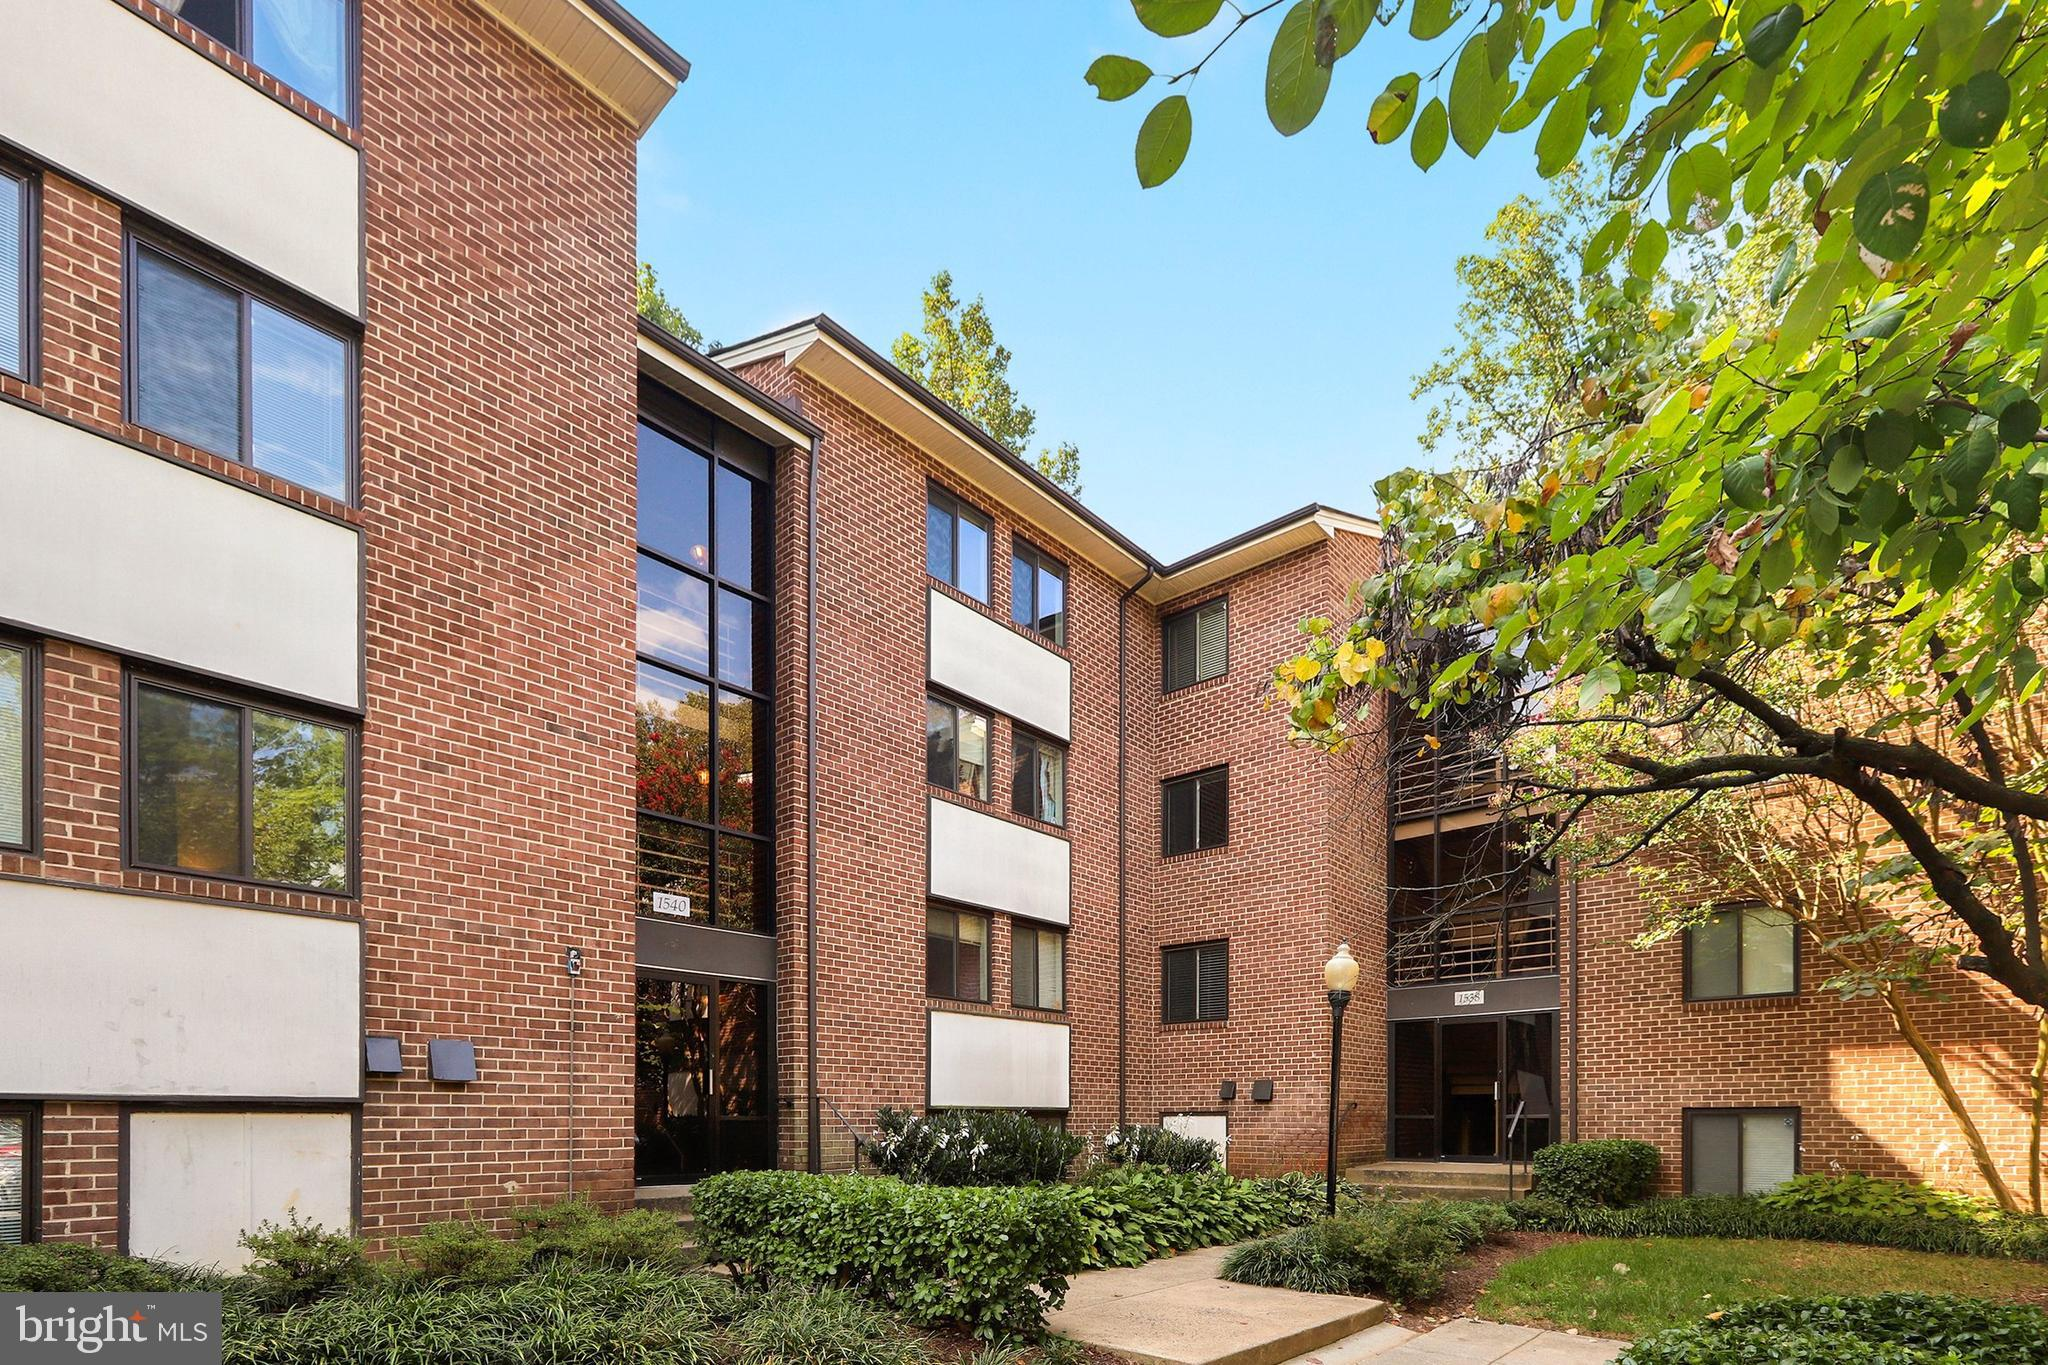 Beautiful top floor condo in the heart of Reston. Lovely hardwood floors throughout the unit. Kitchen is updated with granite countertops and bathroom updated with newer vanity.  Newer washer and dryer. Large private patio to relax on! Condo fees include water, electricity, and gas among other things. Close to playground, trails, tennis courts, bus stops Lake Anne Plaza and Reston Town Center.